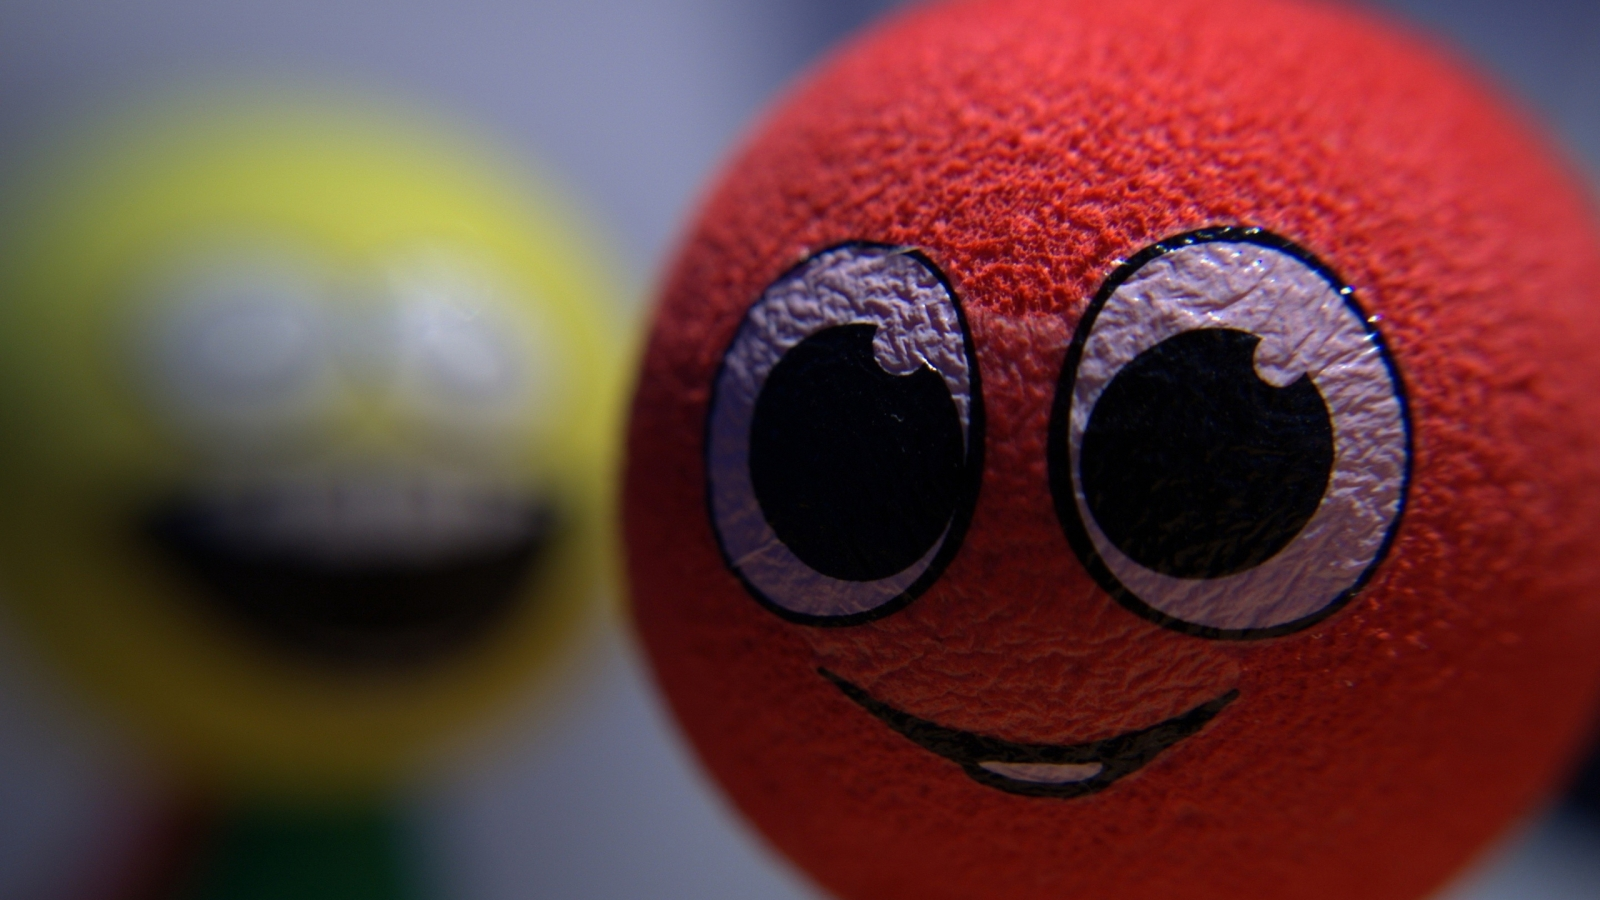 Smiley Ball for 1600 x 900 HDTV resolution